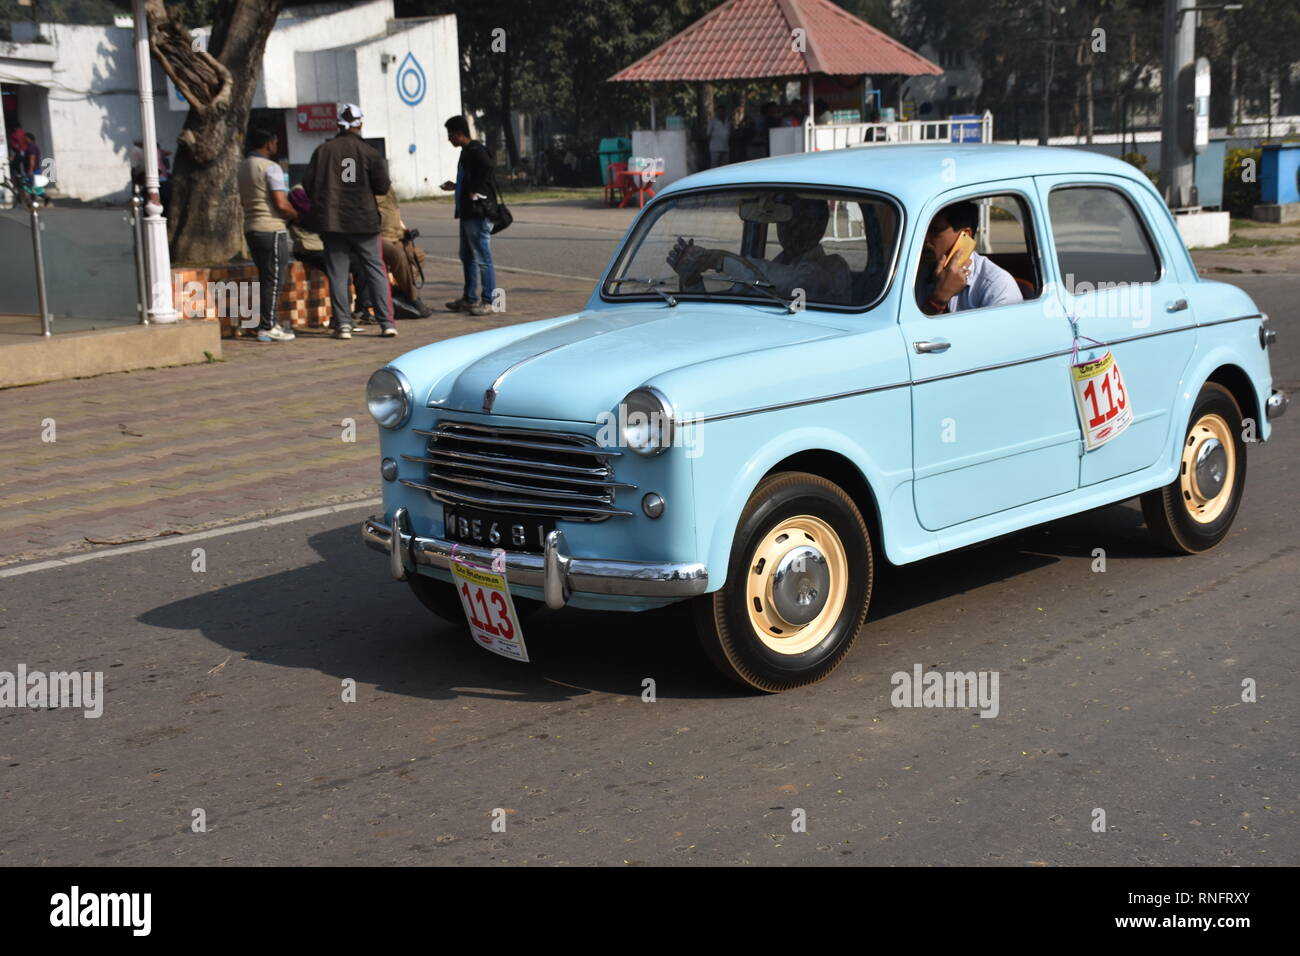 1955 Fiat Millecento Car With 1100 Cc And 4 Cylinder Engine Wbe 681 India Stock Photo Alamy